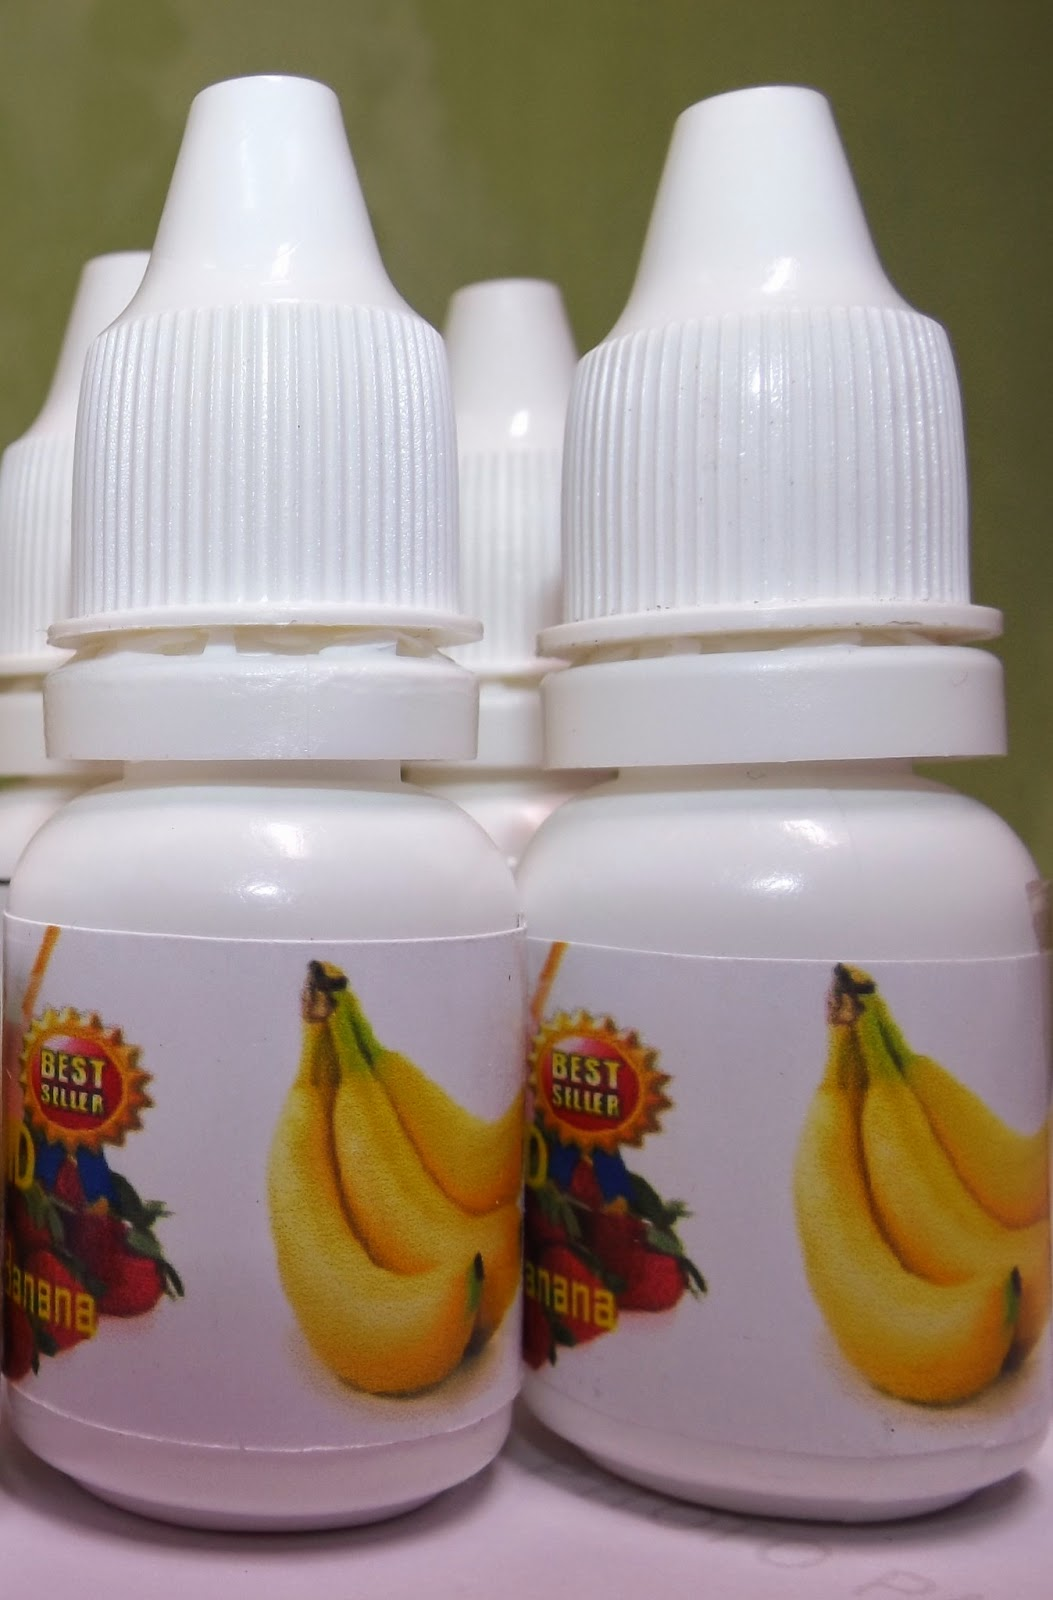 https://www.tokopedia.com/grosironlen/liquid-strawberry-banana-mix-red-bullgum-refil-rokok-elektrik